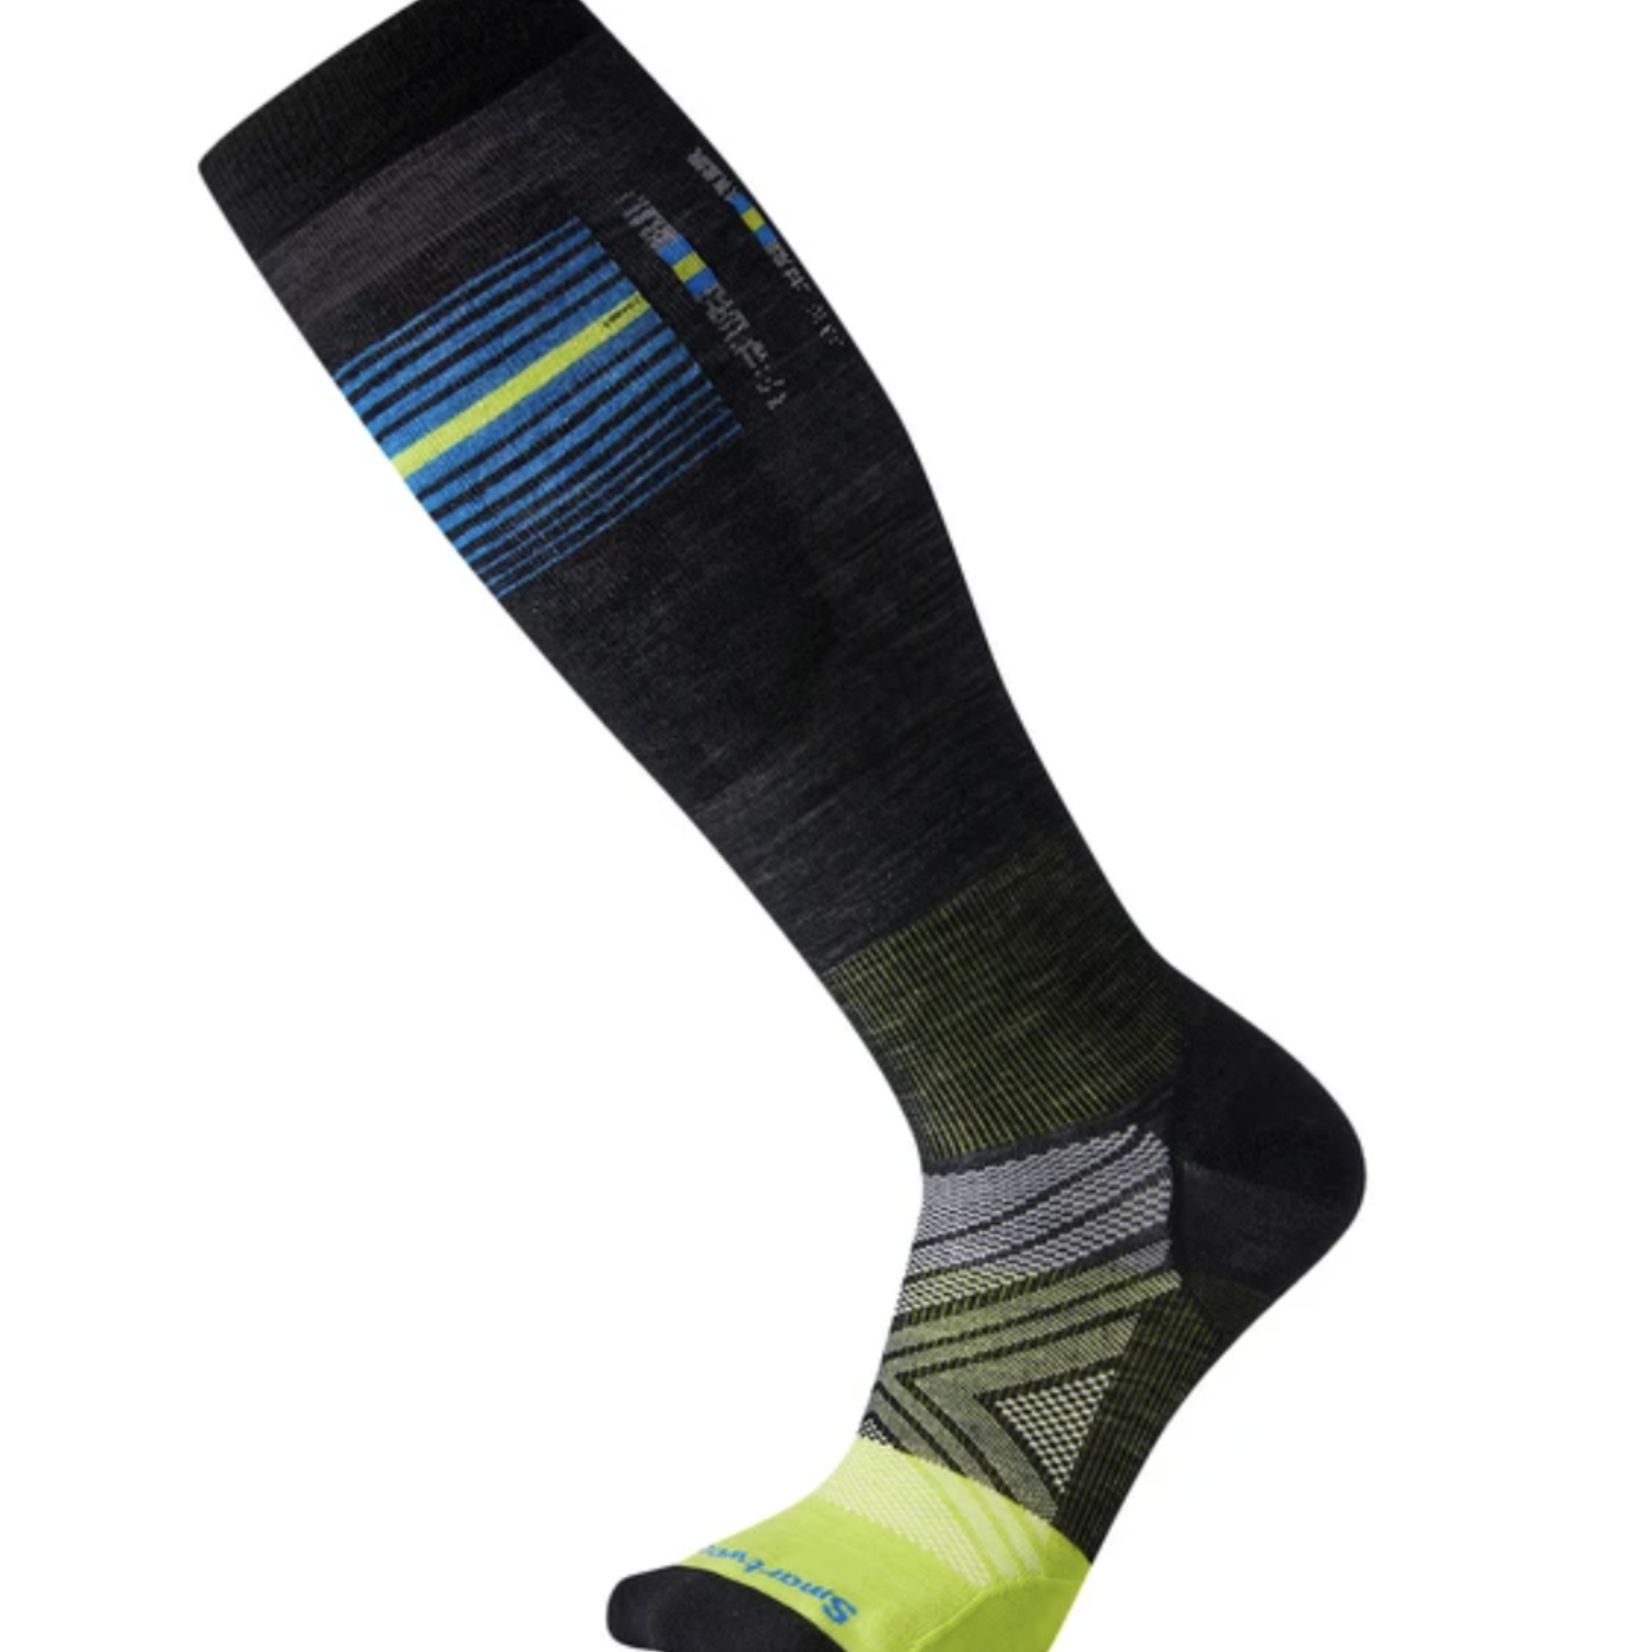 Smartwool Smartwool Pro Ski Race over the calf